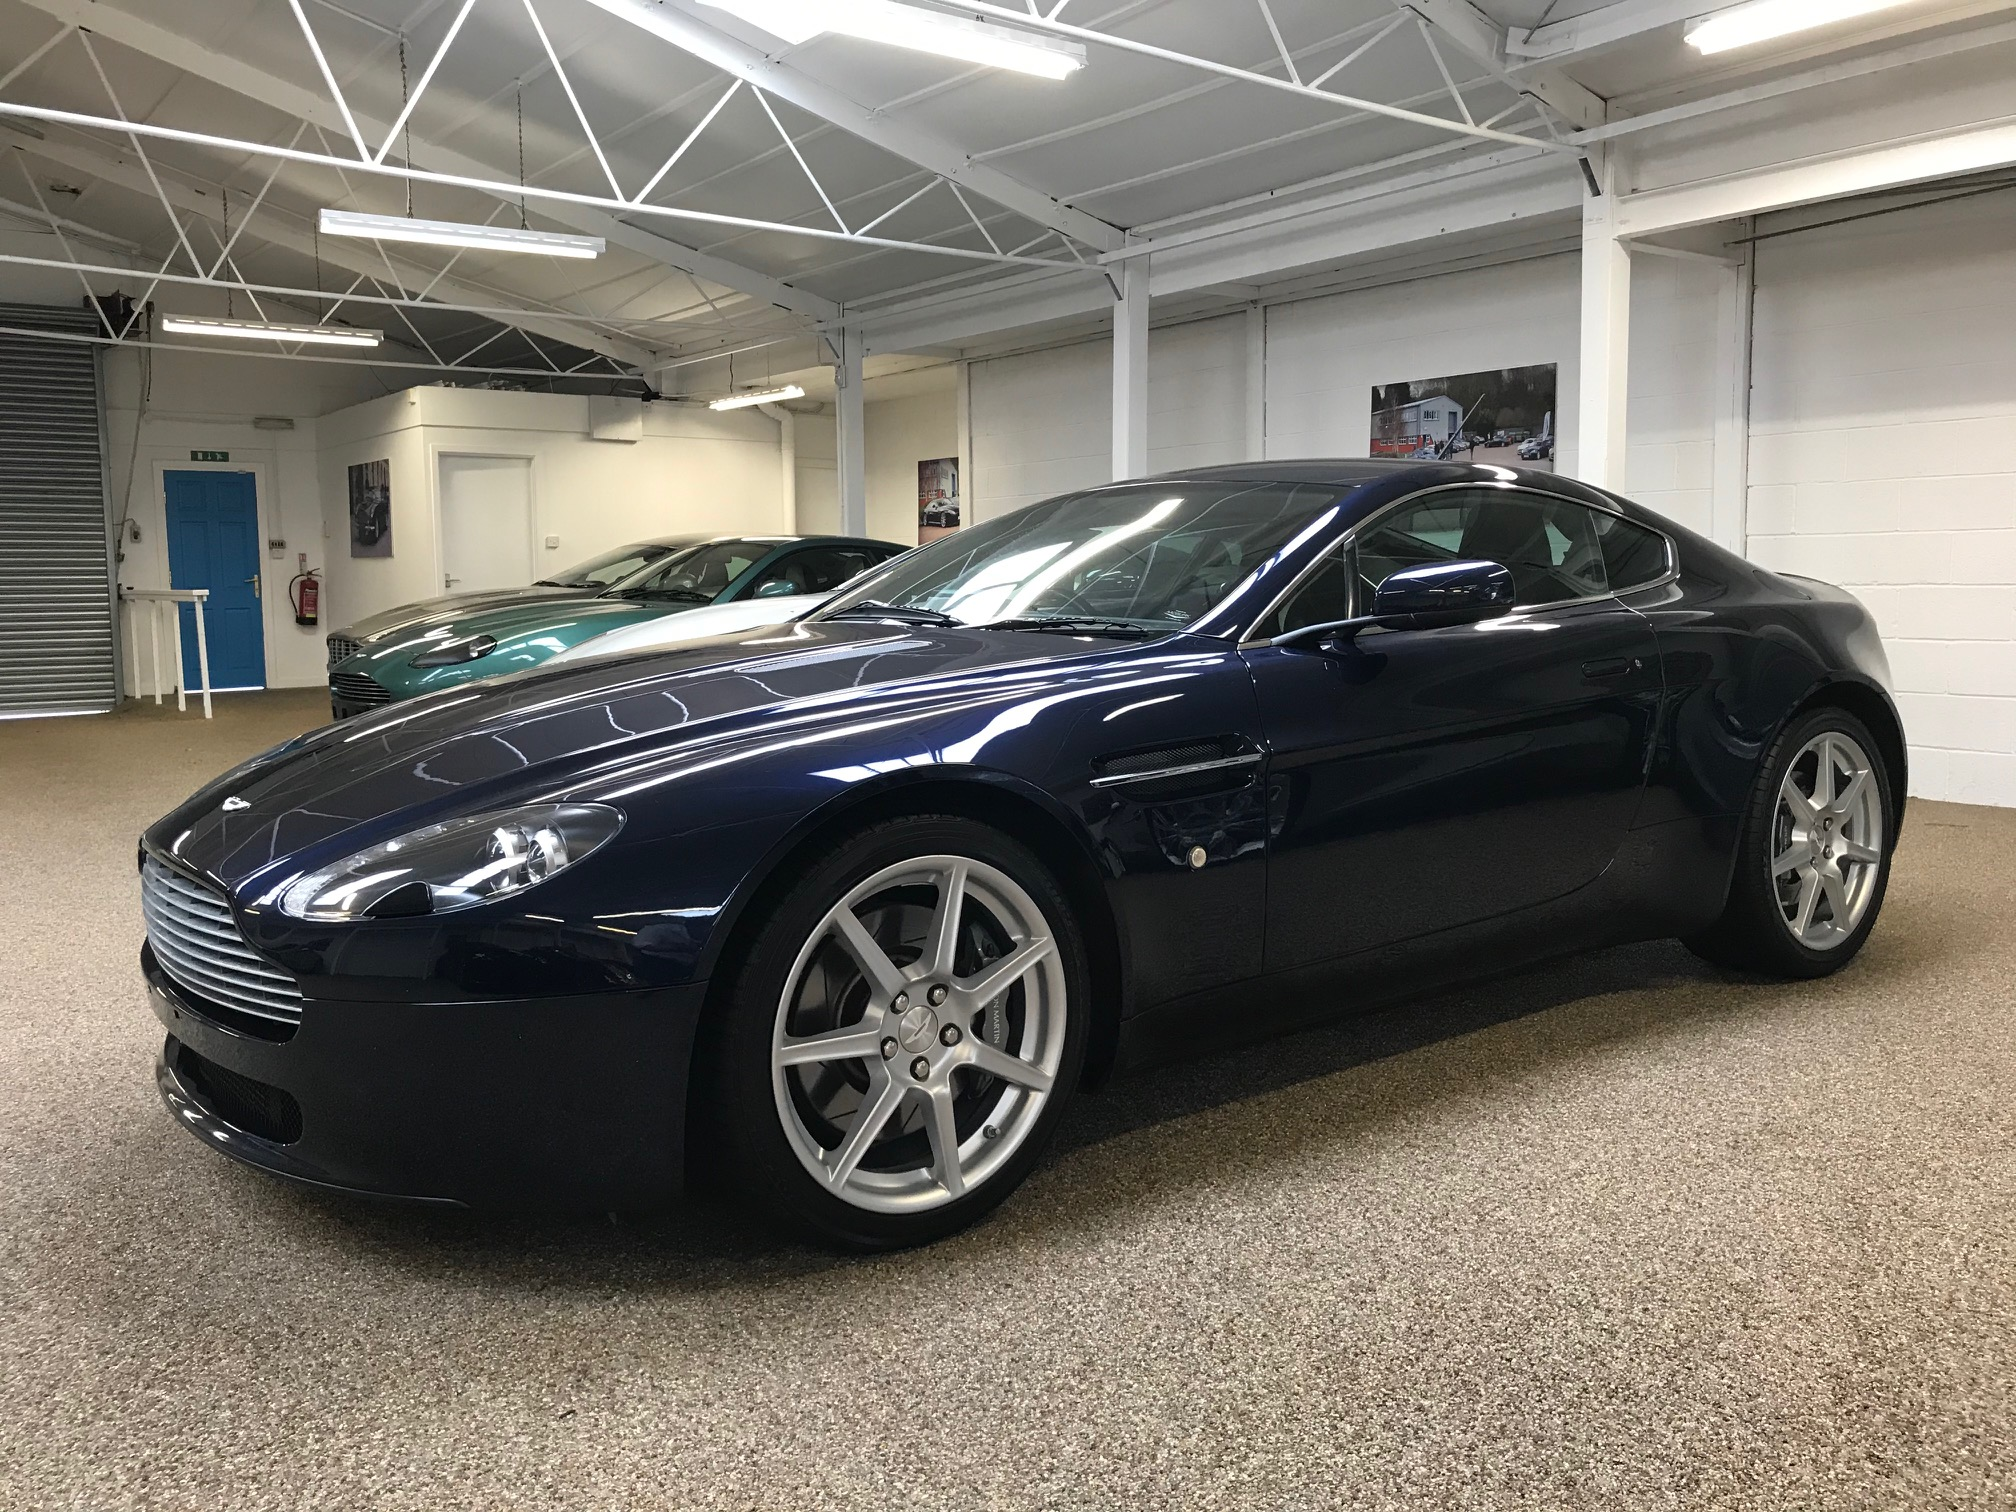 Used V8 Vantage for sale